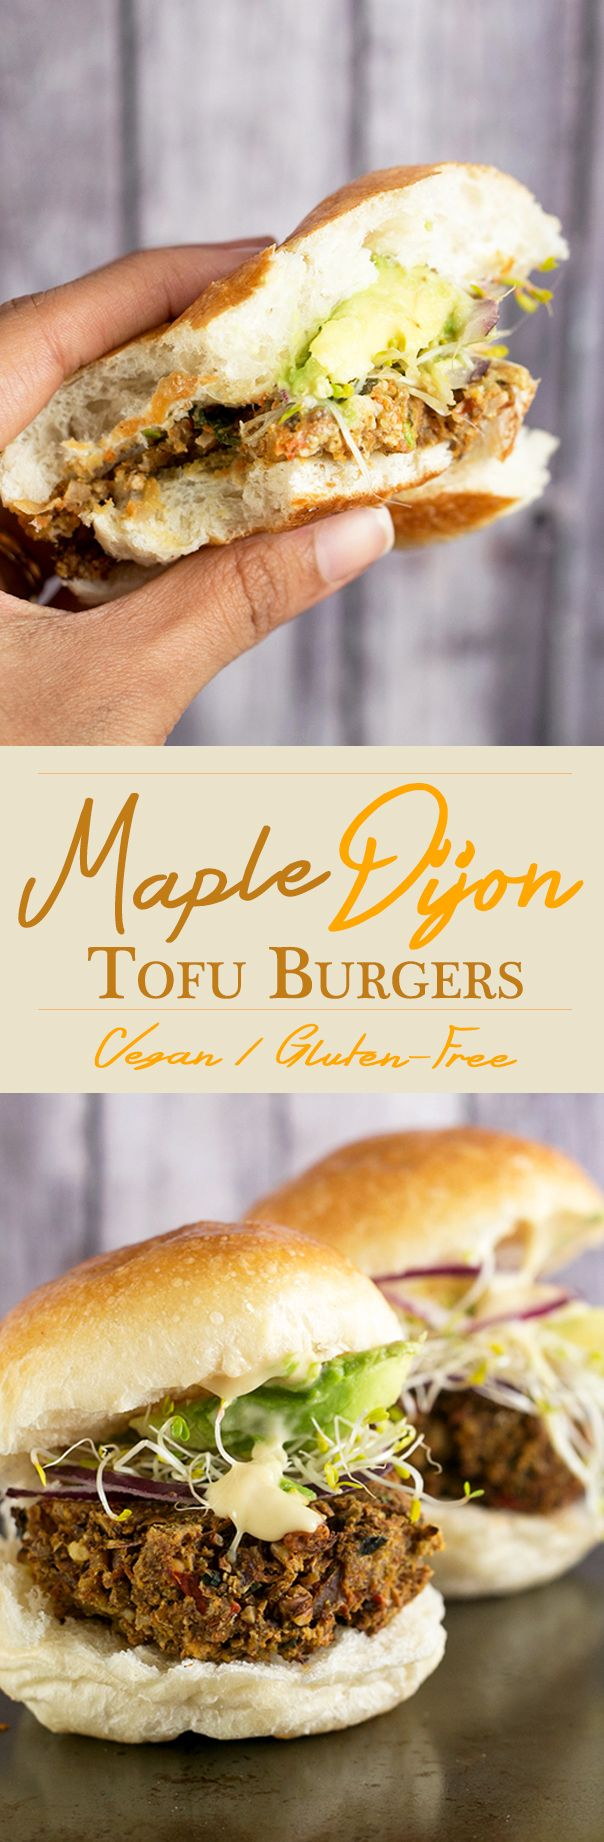 Maple Dijon Tofu Burgers - a healthy veggie burger made with Tofu and Walnuts, served with a Maple Dijon Mayonnaise.